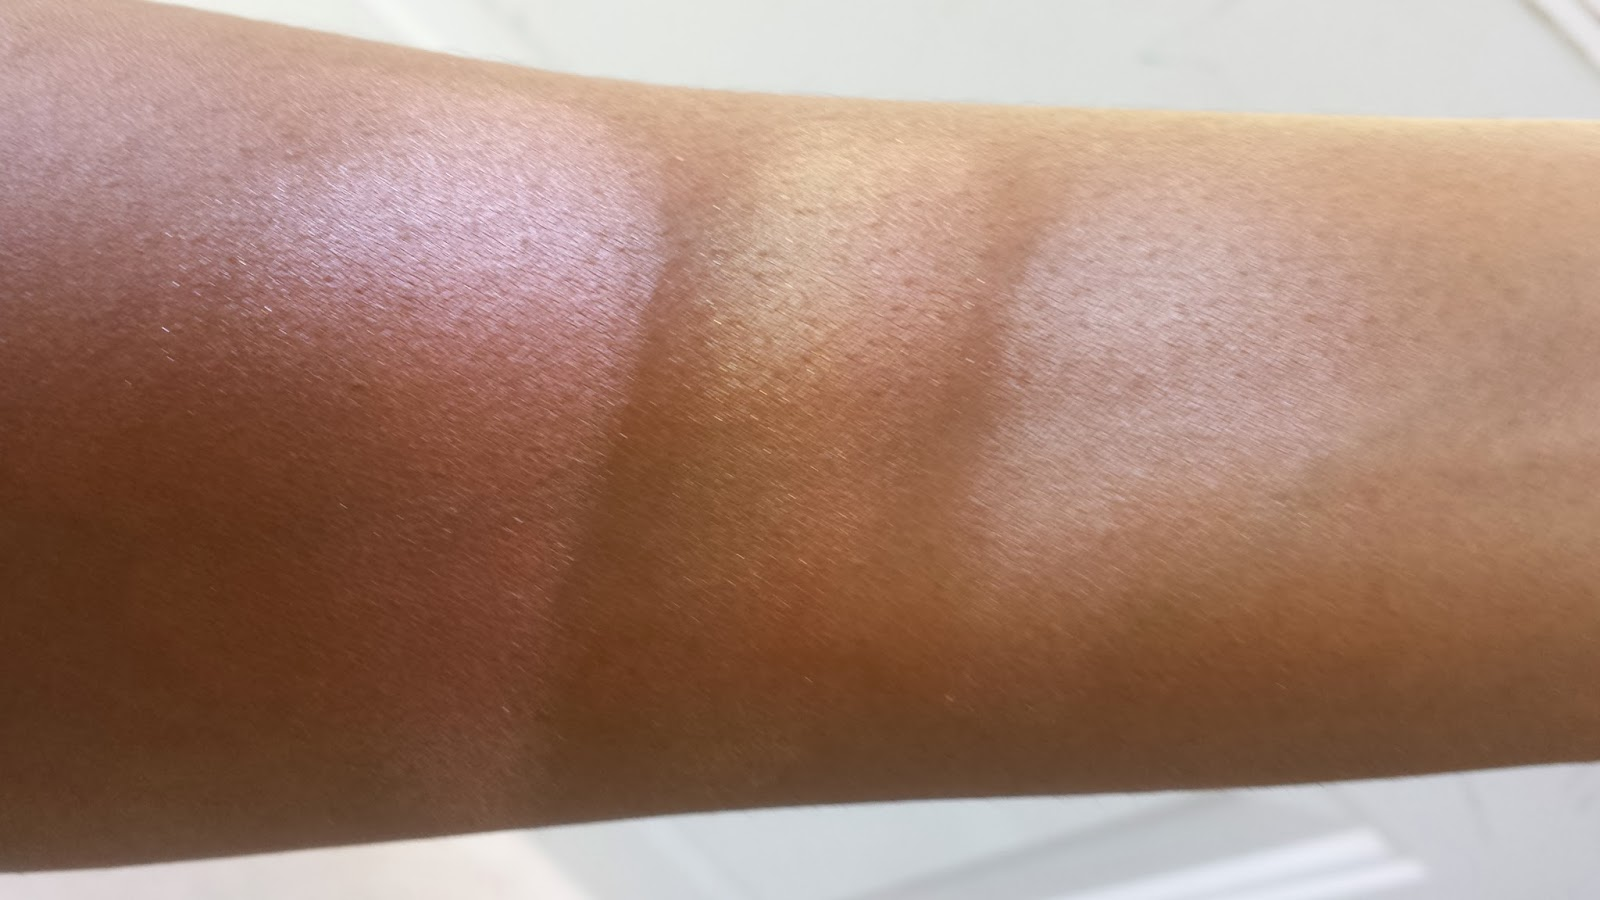 Laura Mercier 'Pink Mosaic' Shimmer Bloc, M.A.C 'Centre of The Universe' Mineralized Skinfinish, Smashbox 'Baked Starburst' swatches - www.modenmakeup.com